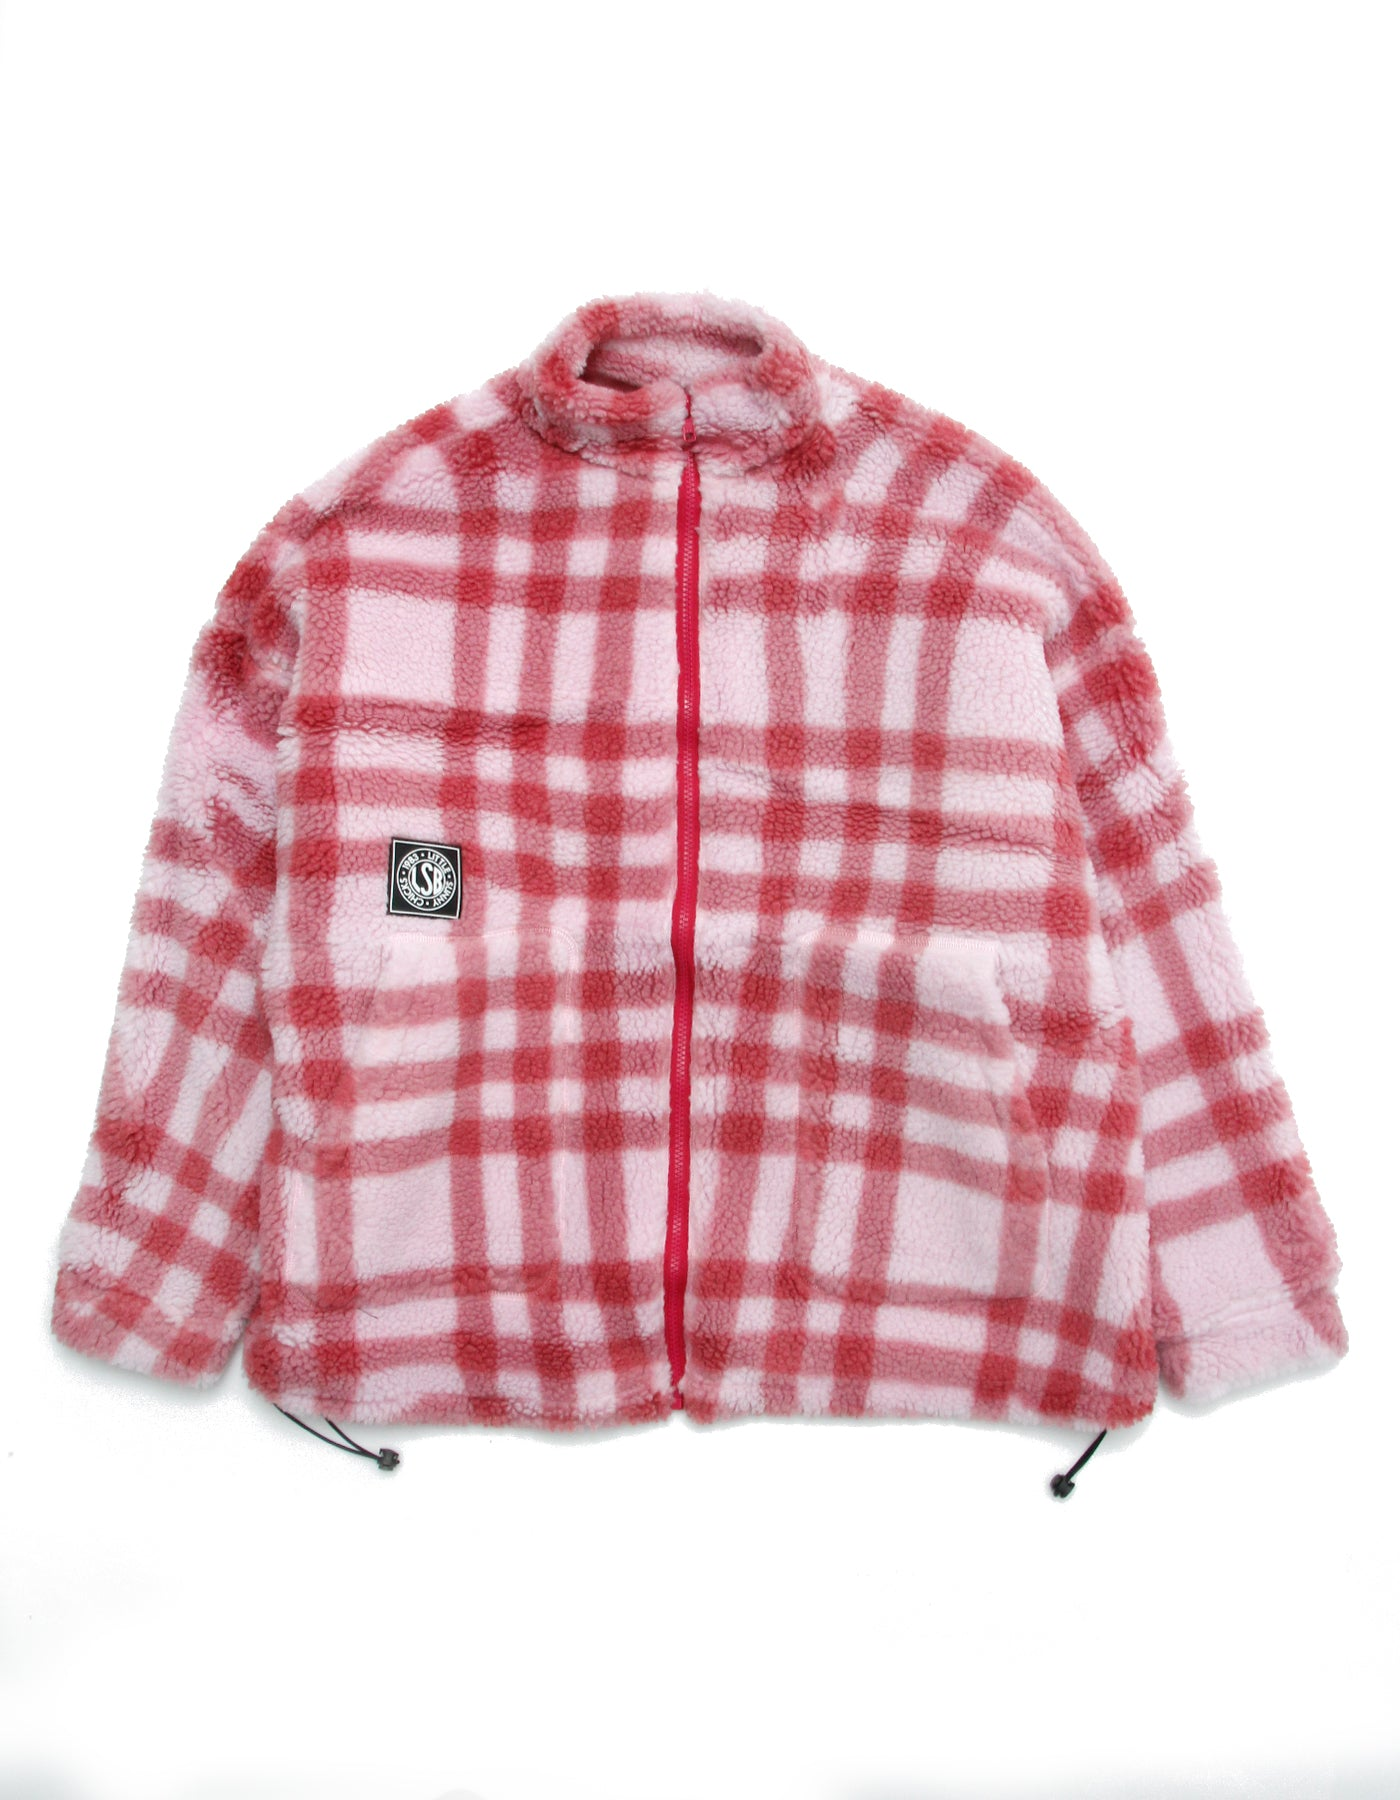 Original checked boa jacket / PINK